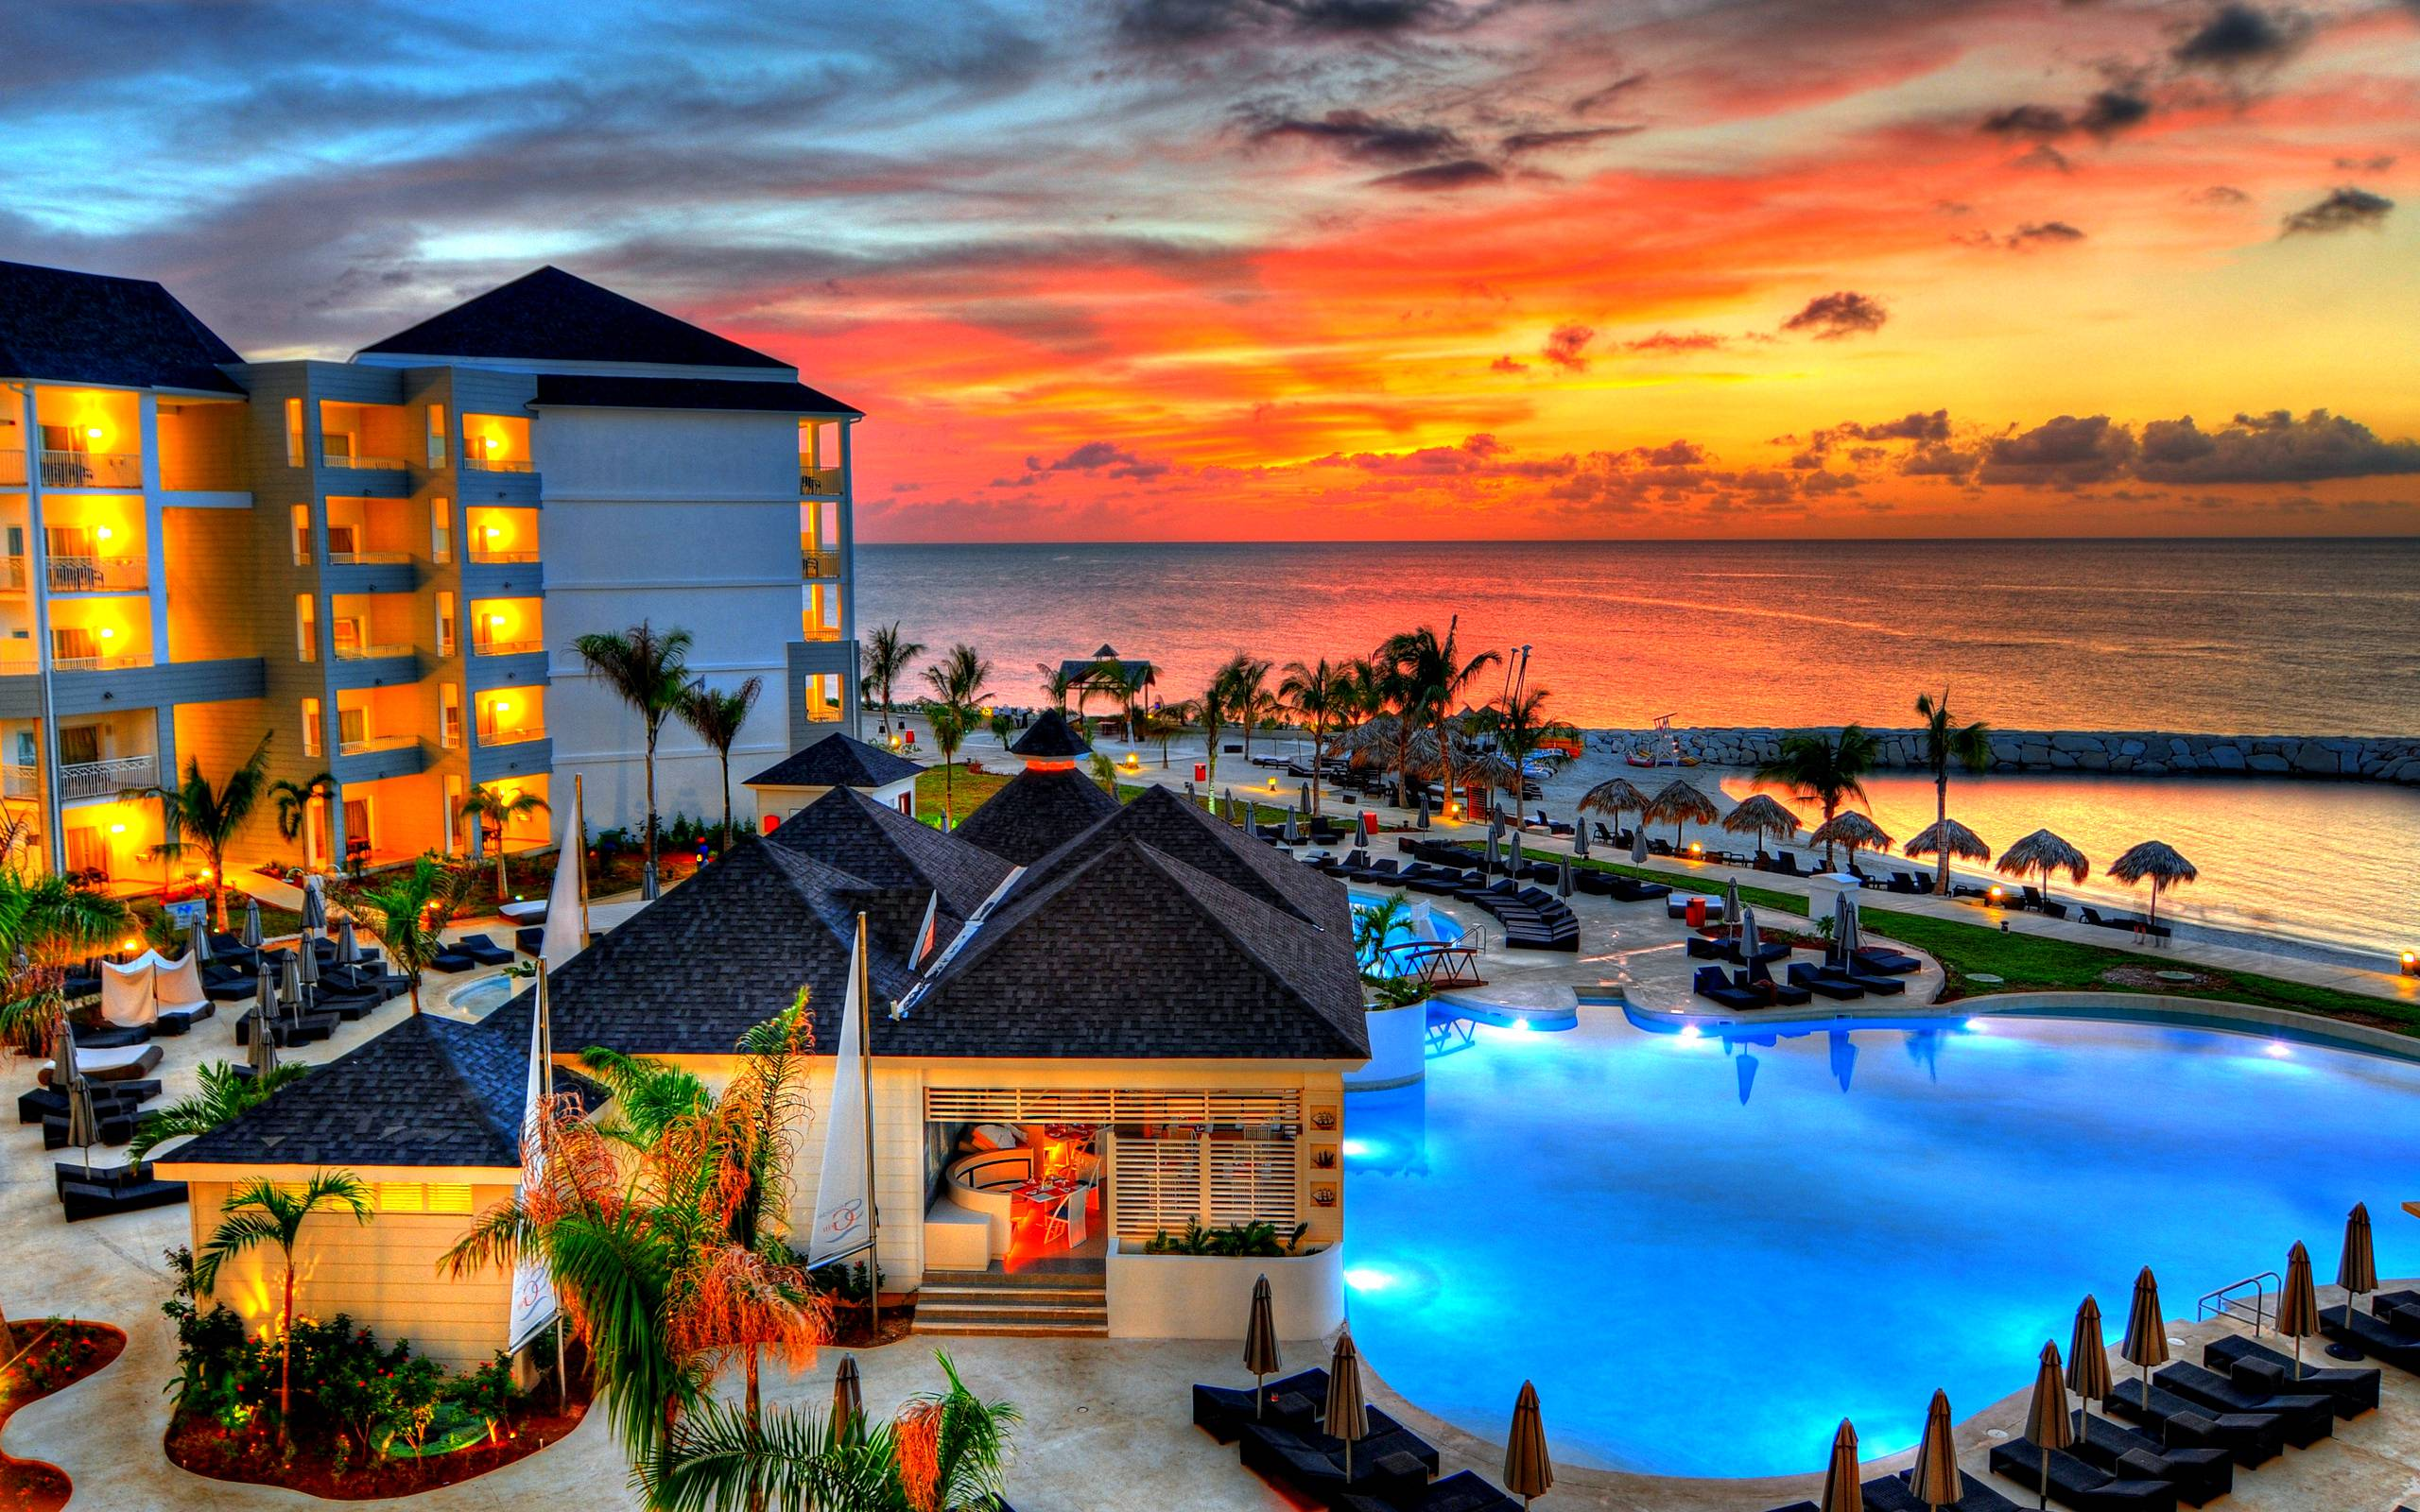 Goldeneye resort jamaica wallpaper | 1920x1200 | #30407